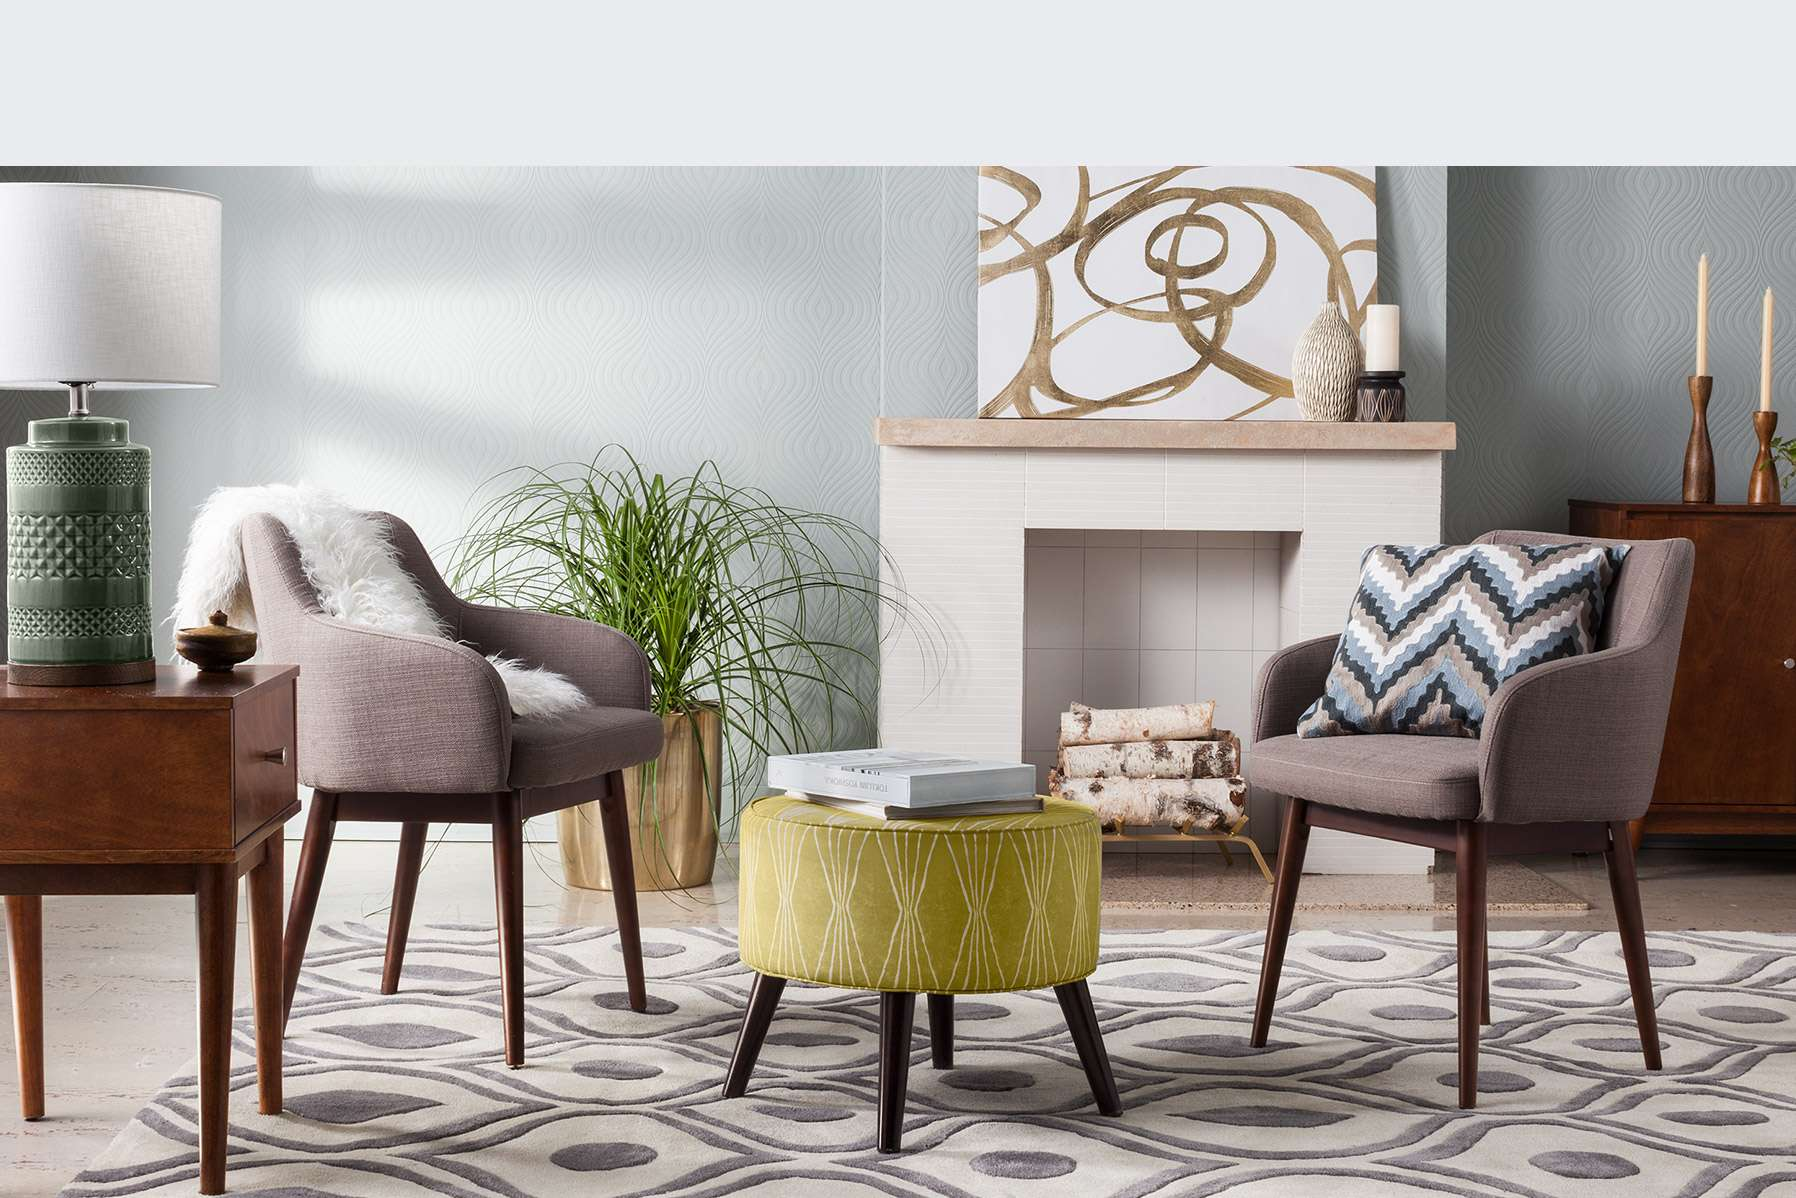 Foremost midcentury modern decor target for Modern accents